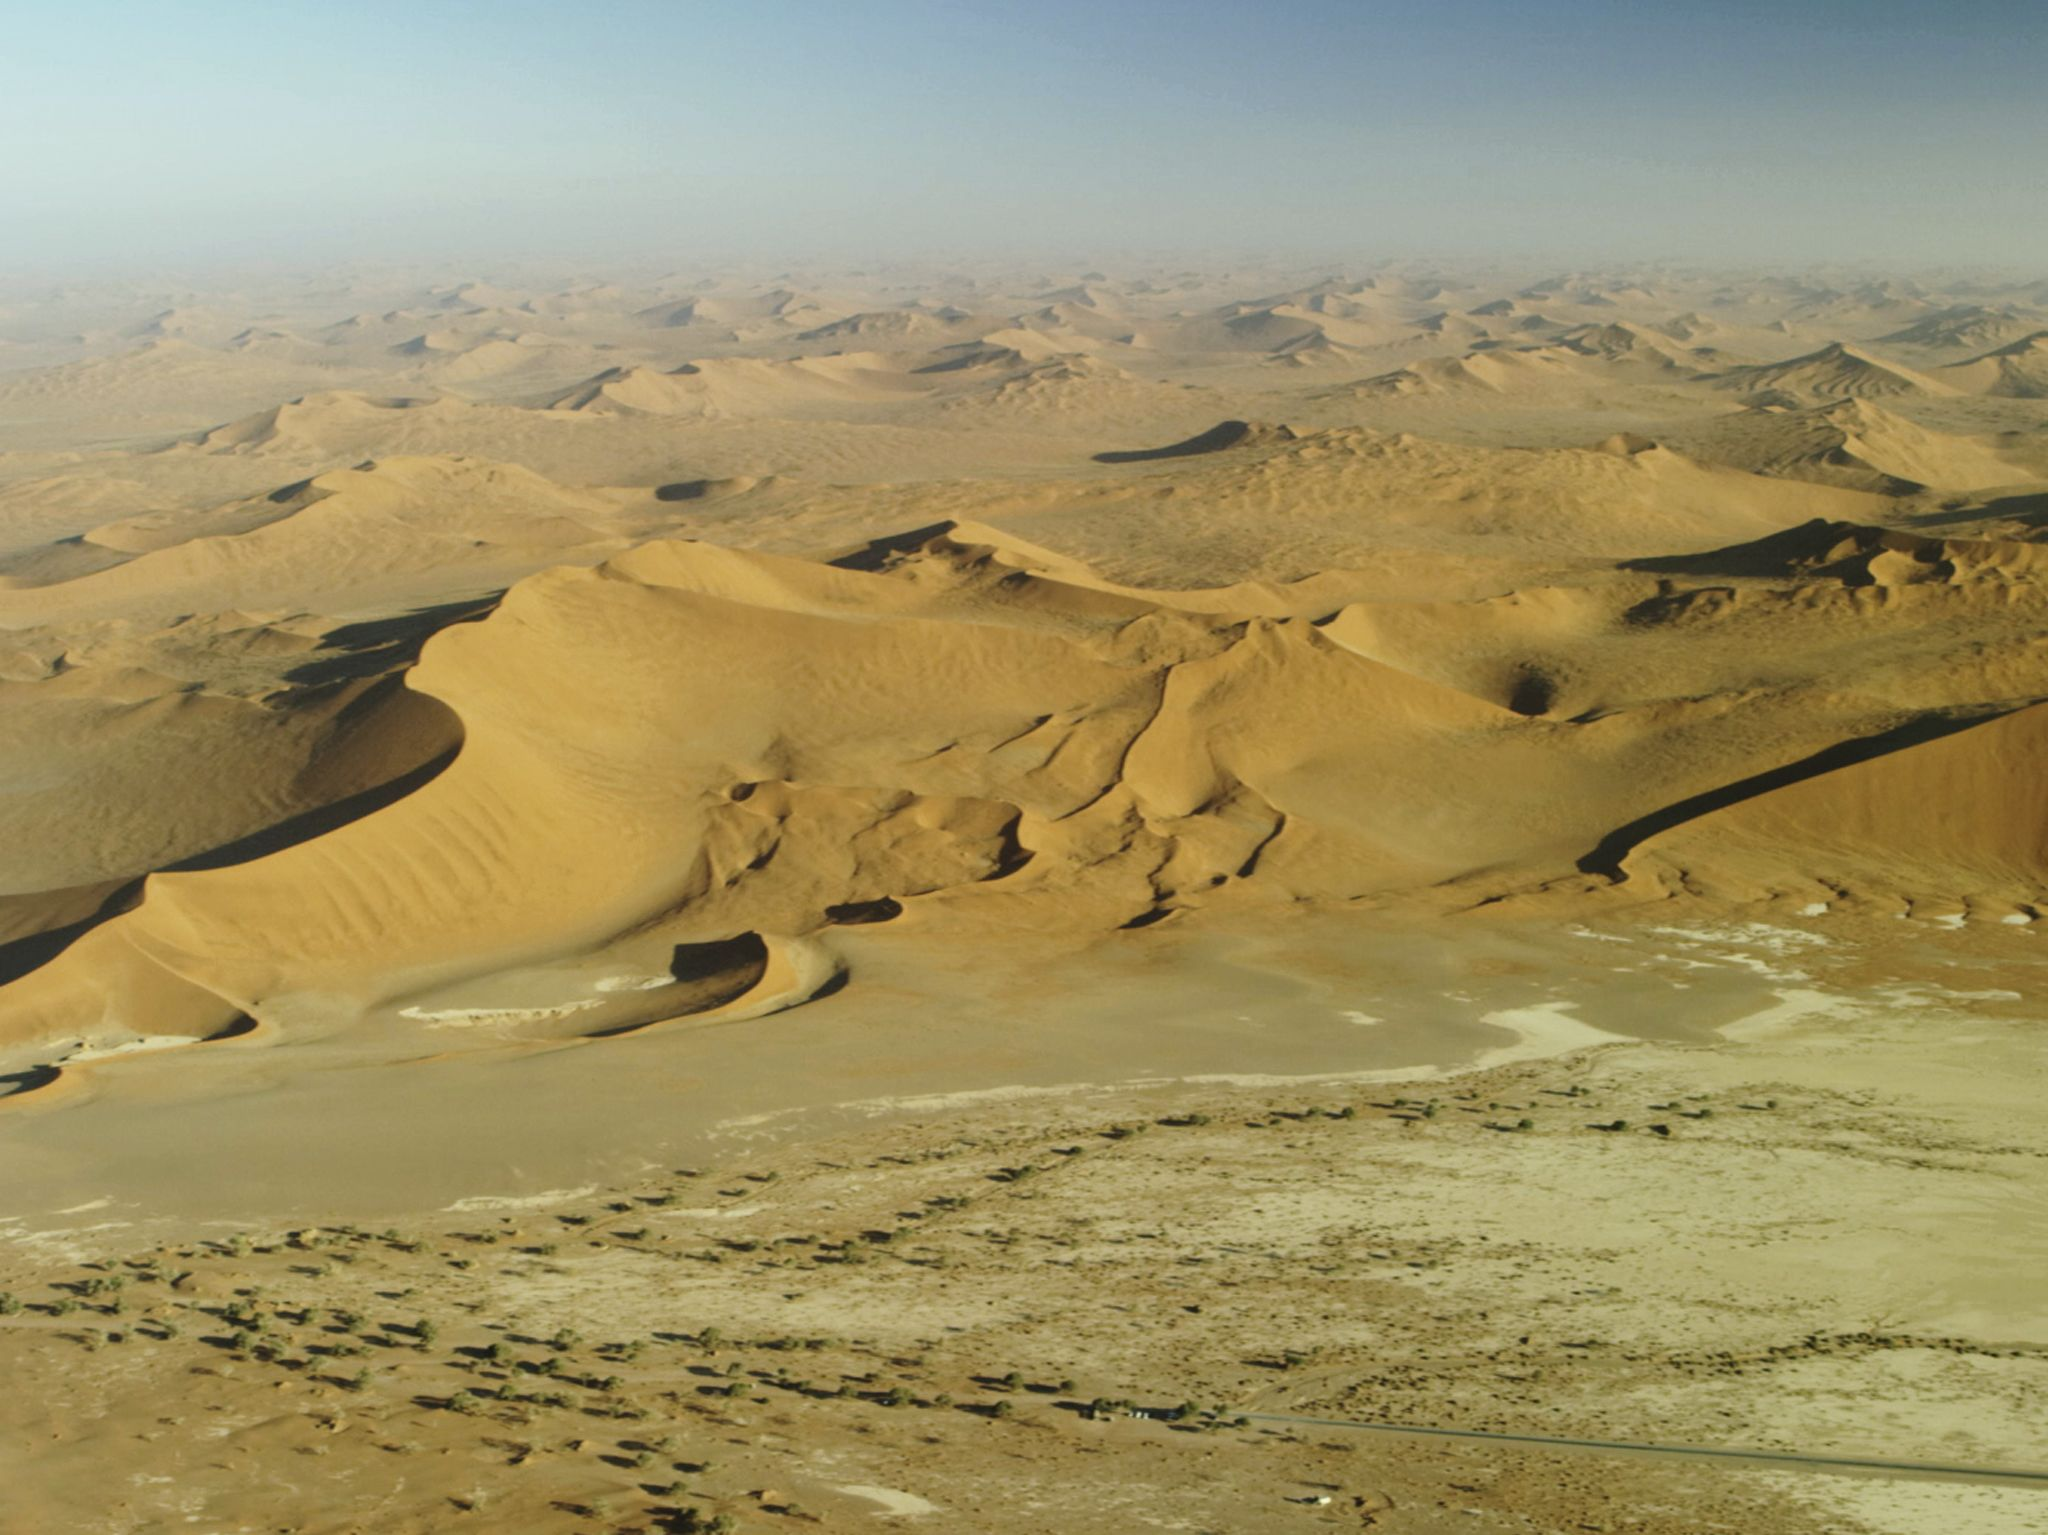 Sand dunes. This image is from Africa's Deadliest. [Photo of the day - November 2020]